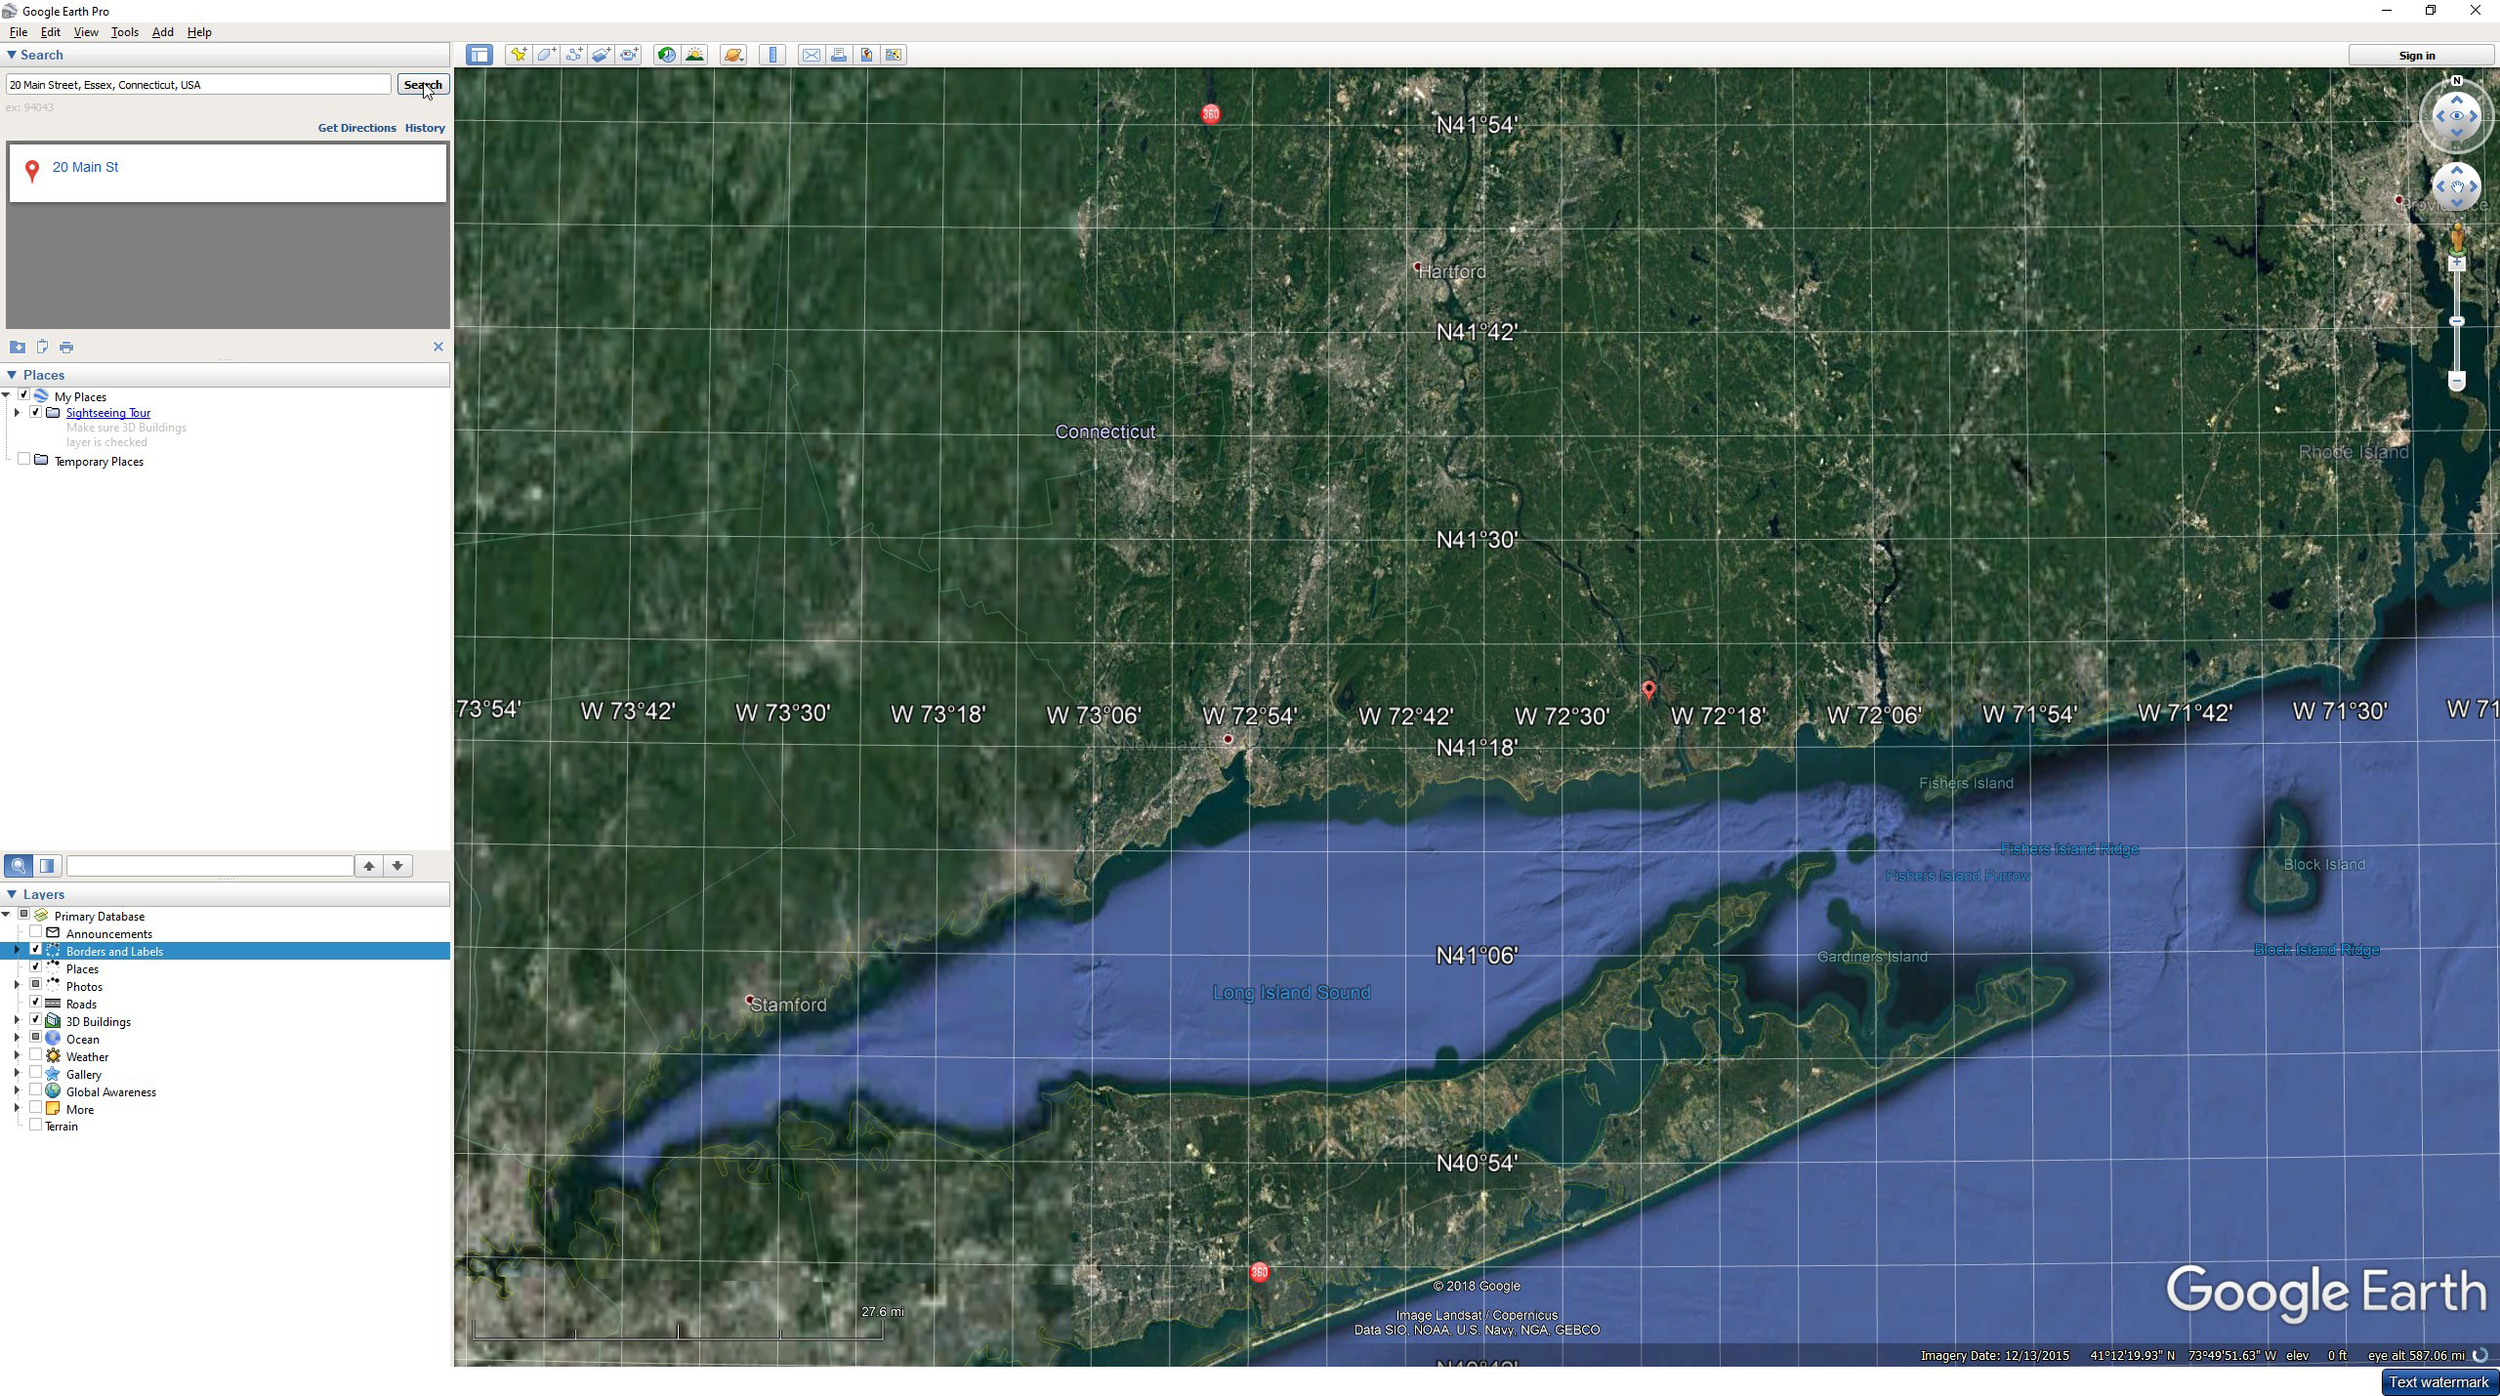 RoofOnline.com - How to Find Your House in Google Earth 5.png